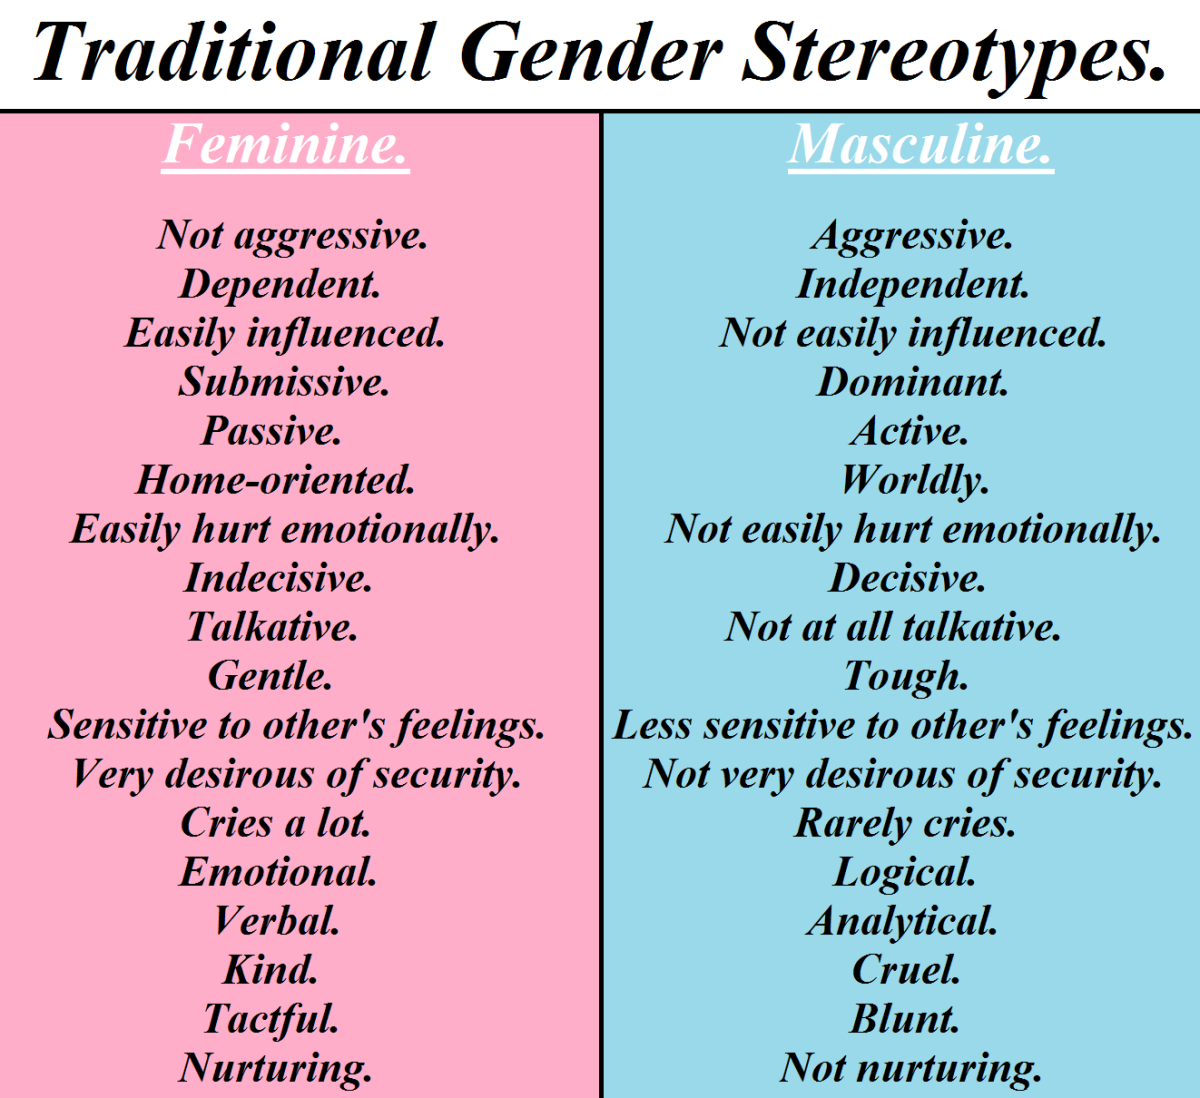 English 214 25 Gender Roles Are Not For The Homonormative